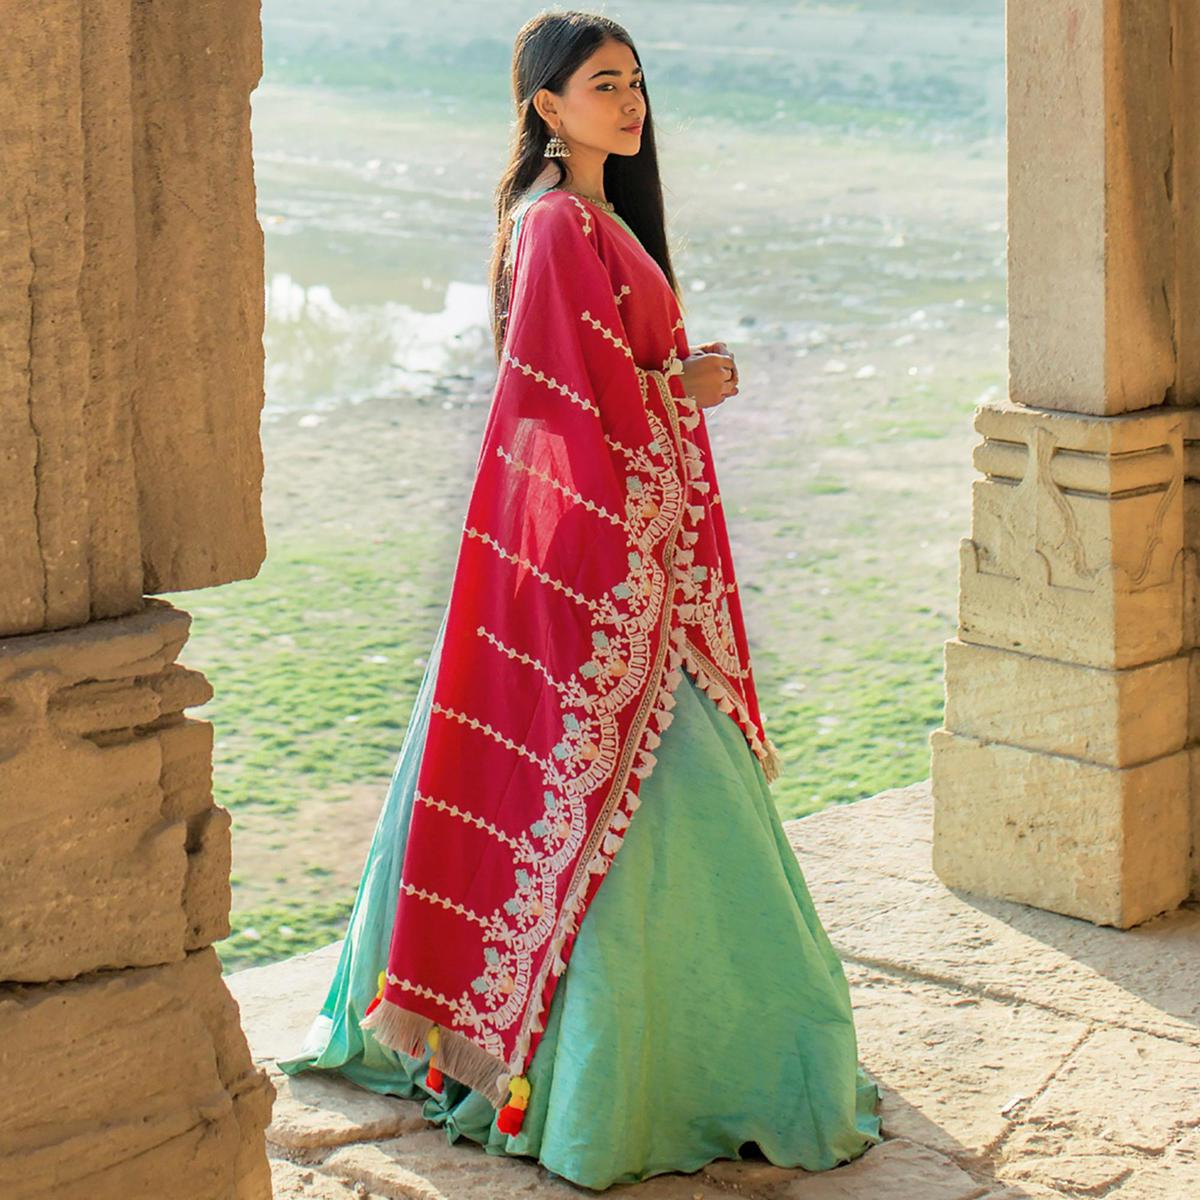 Glowing Red Colored Embroidered Khadi Cotton Dupatta